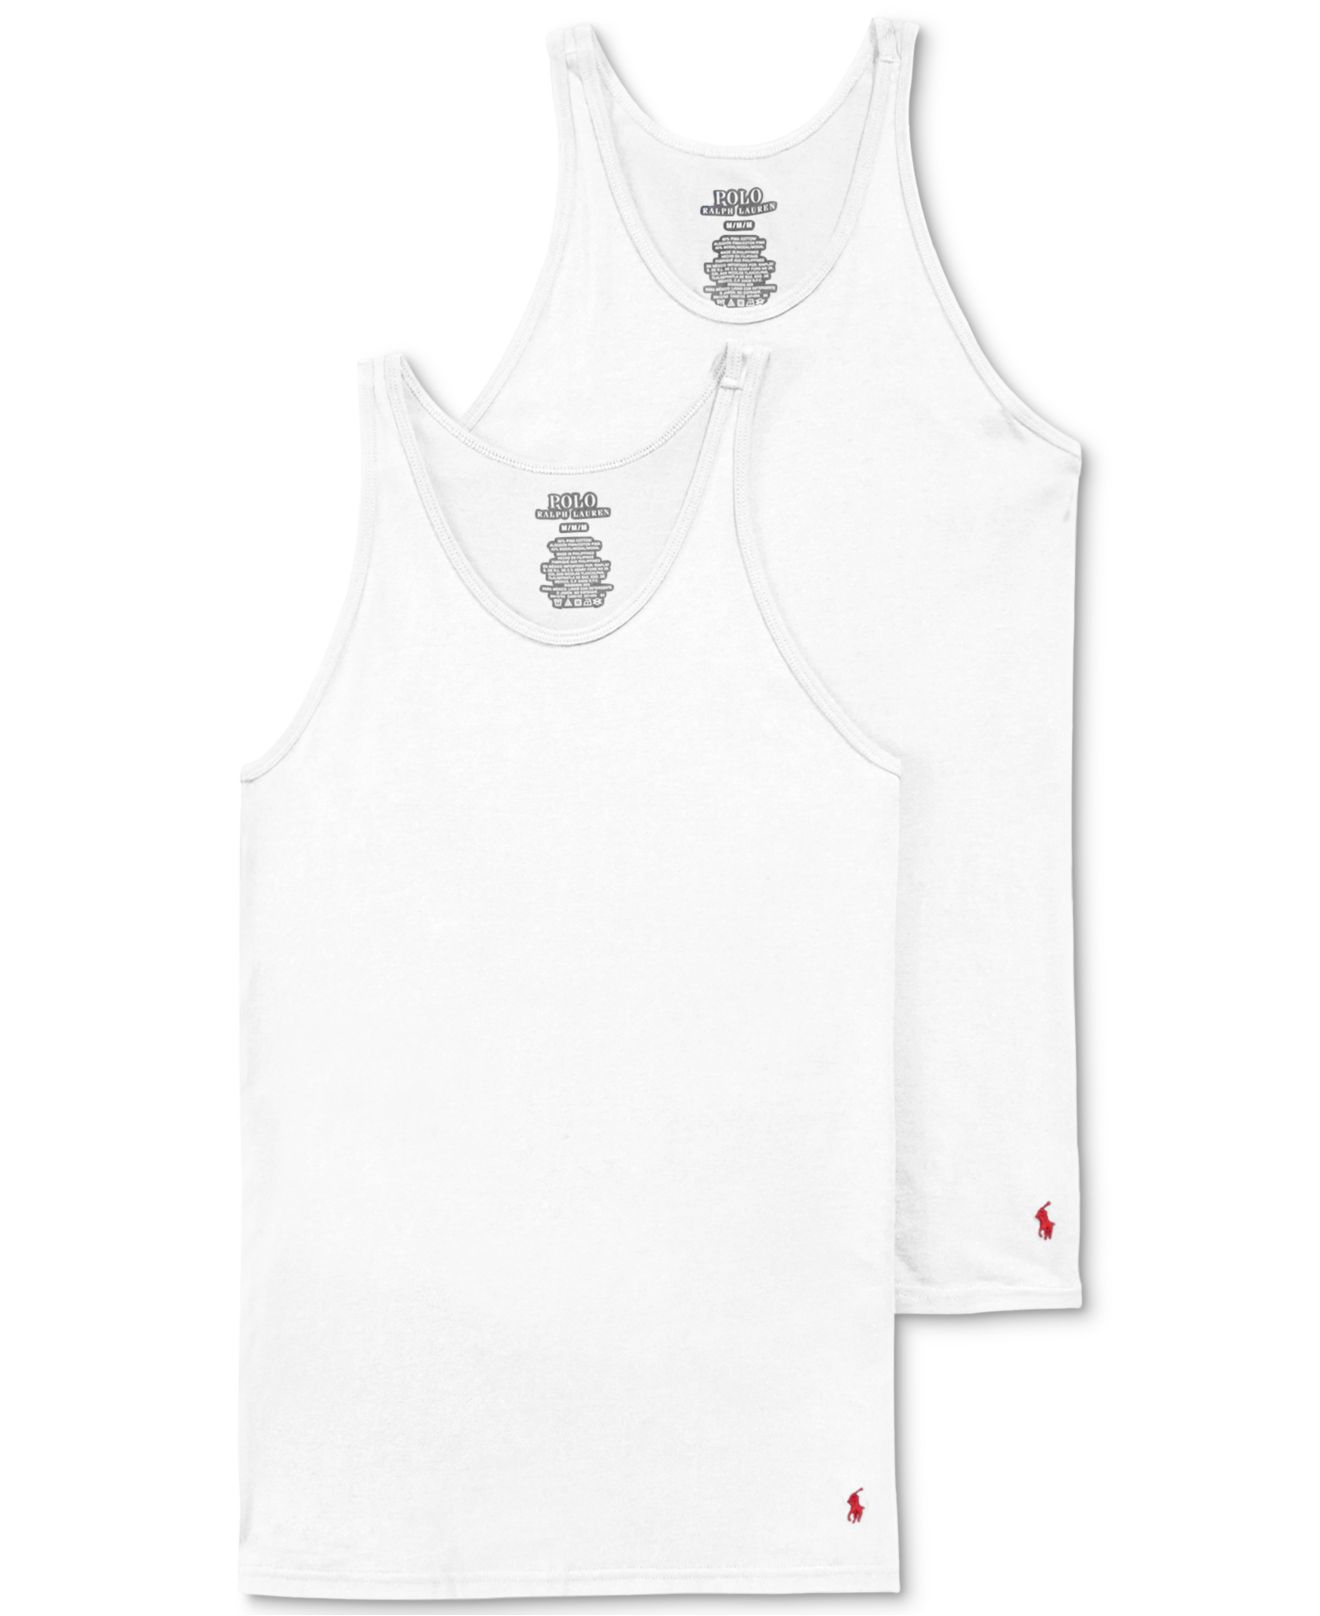 aff6181ca543b Lyst - Polo Ralph Lauren Men s Supreme Comfort Tank 2-pack in White ...